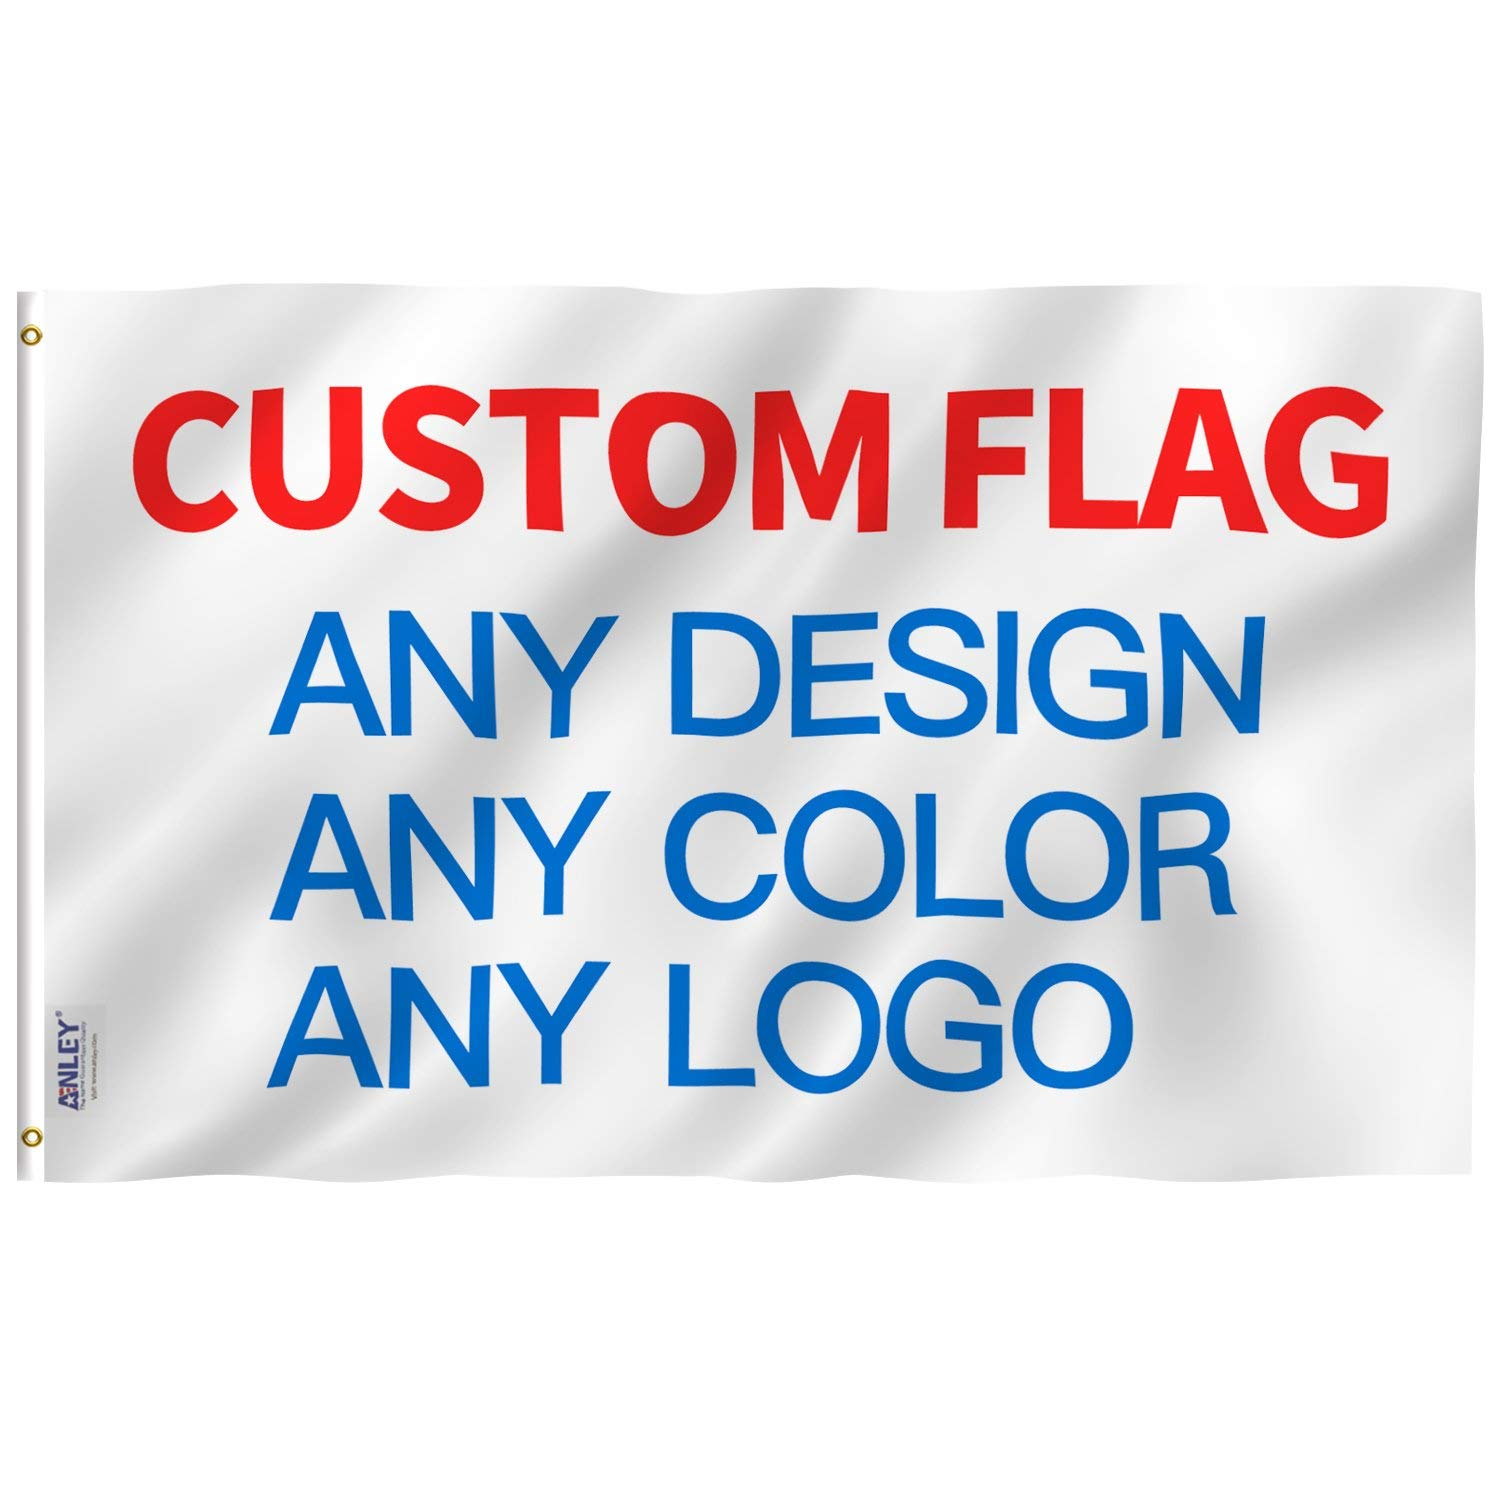 Anley [CUSTOM FLAG 3x5 Ft Customized Flags Banners - Print Your Own Logo/Design/Words - Vivid Color, Canvas Header and Double Stitched - 100D Polyester with Brass Grommets 3 X 5 Ft